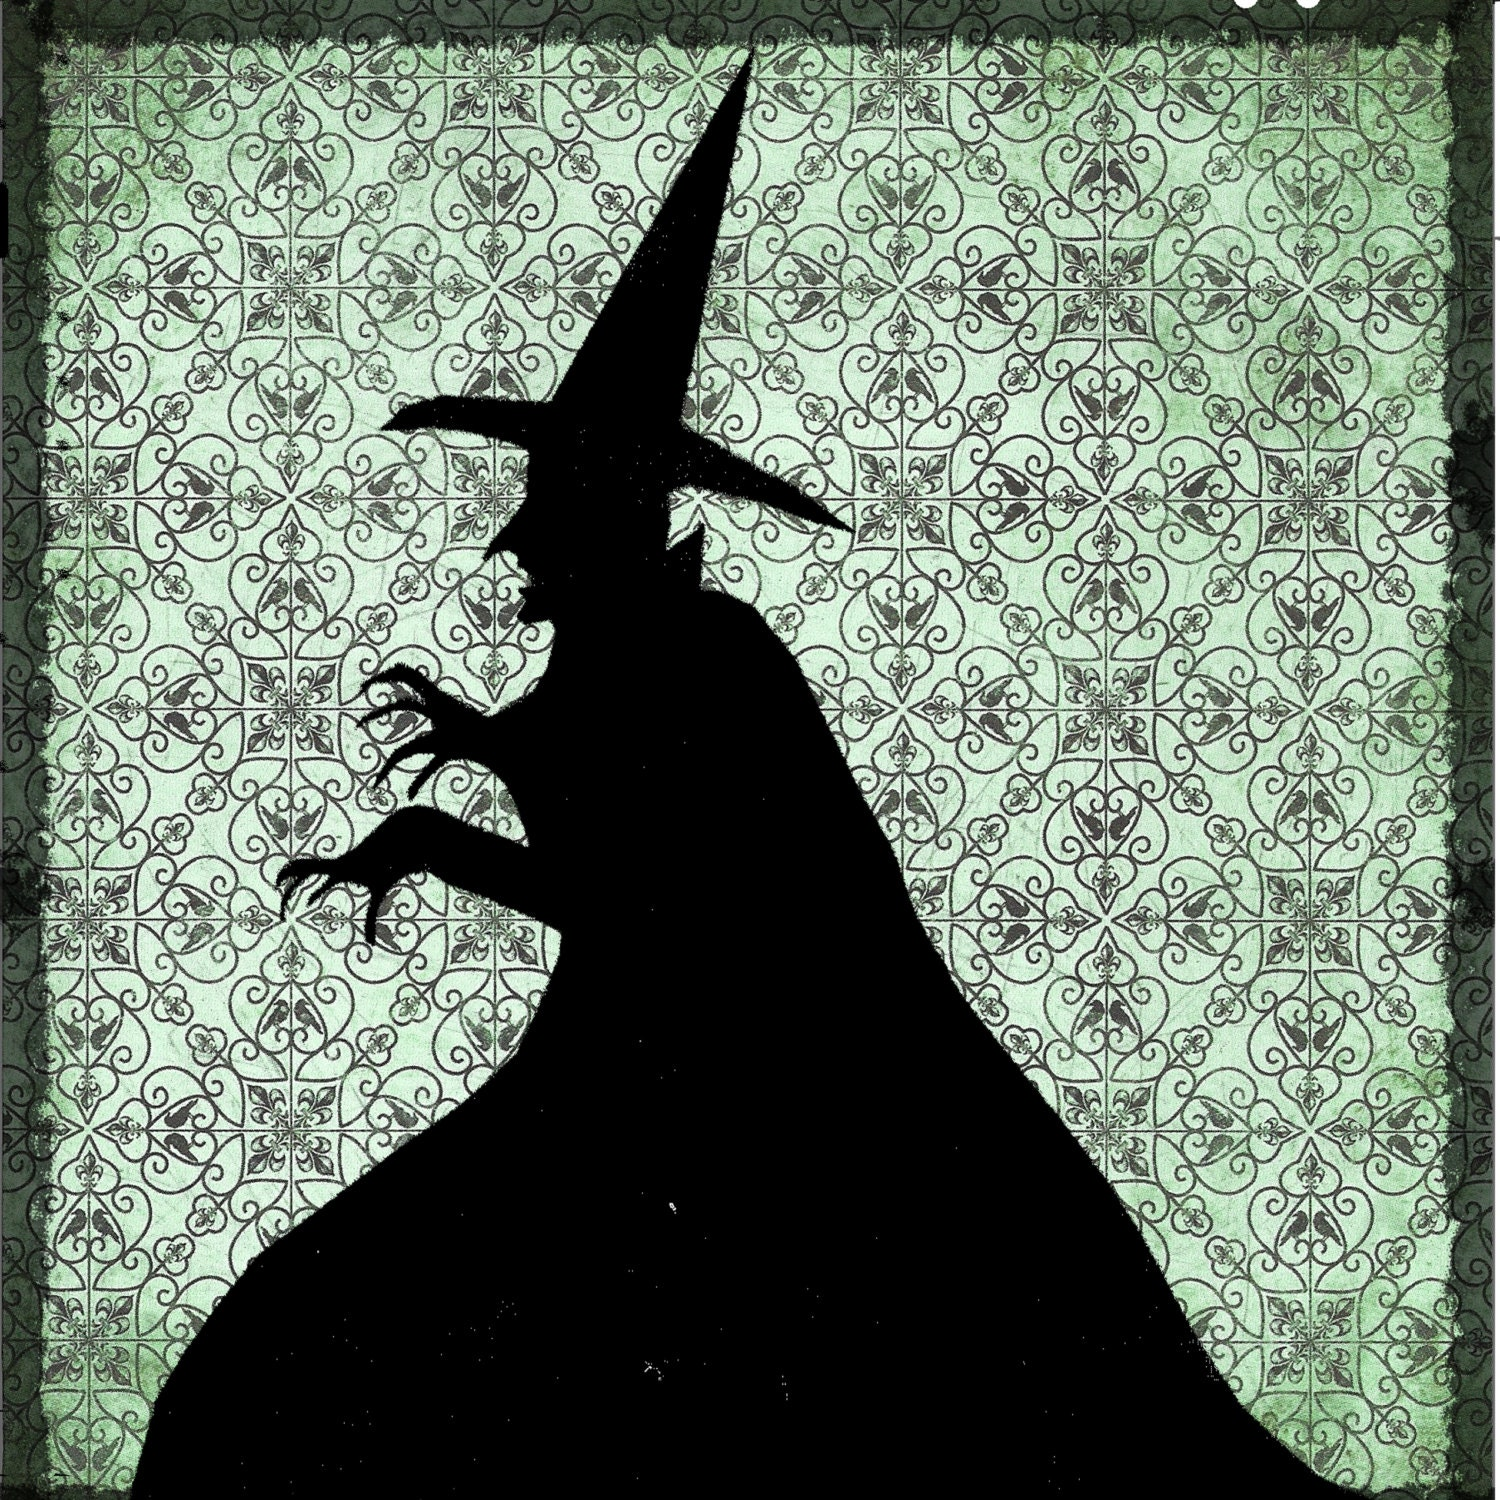 Comwitch Home Decor : Items similar to The Wicked witch, home decor ready to hang on Etsy